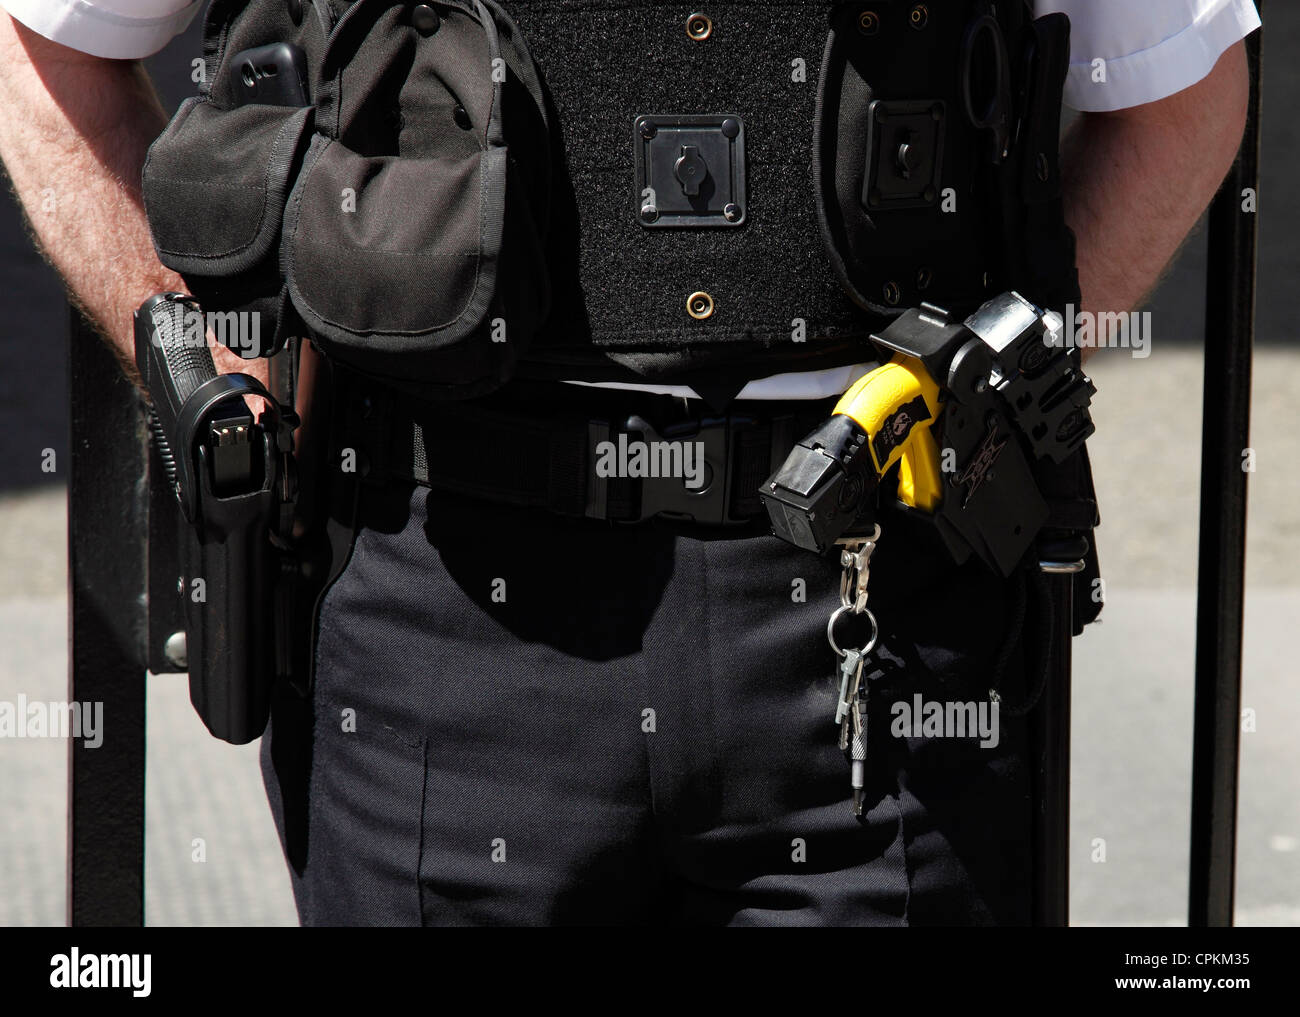 An armed Metropolitan police officer at Downing Street, Westminster, London, England, U.K. Stock Photo